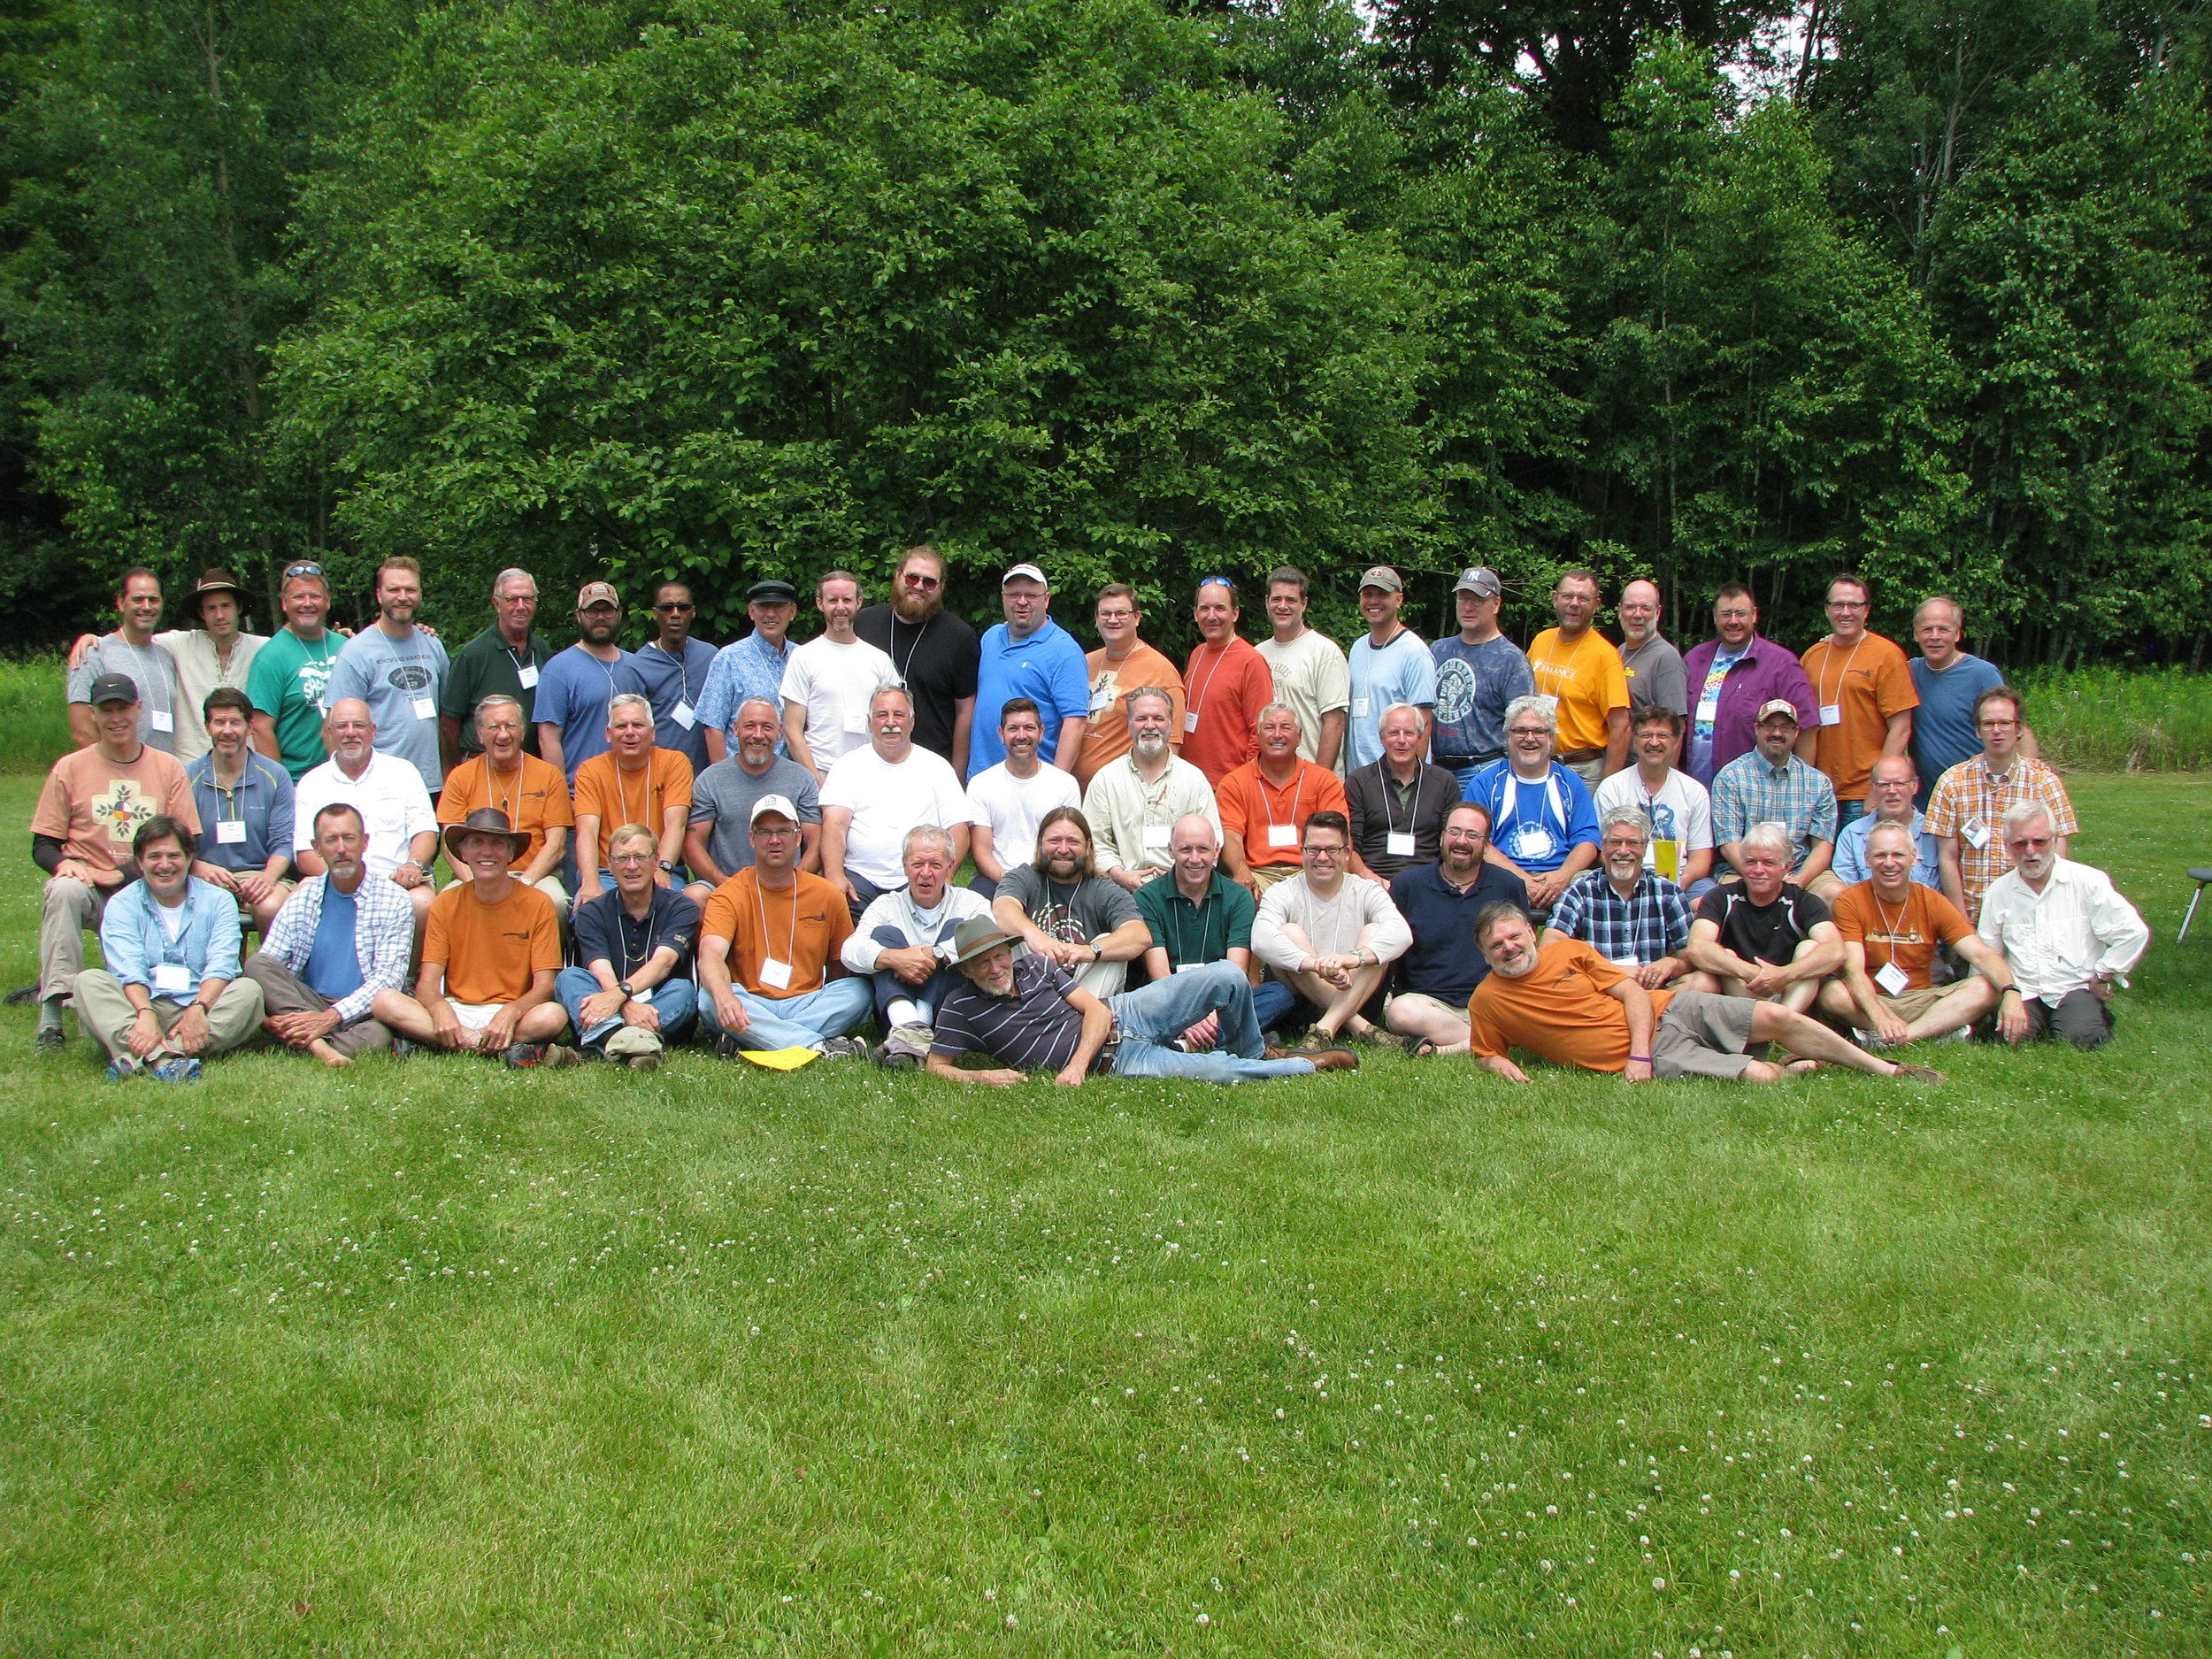 MROP 2015 - Full Group